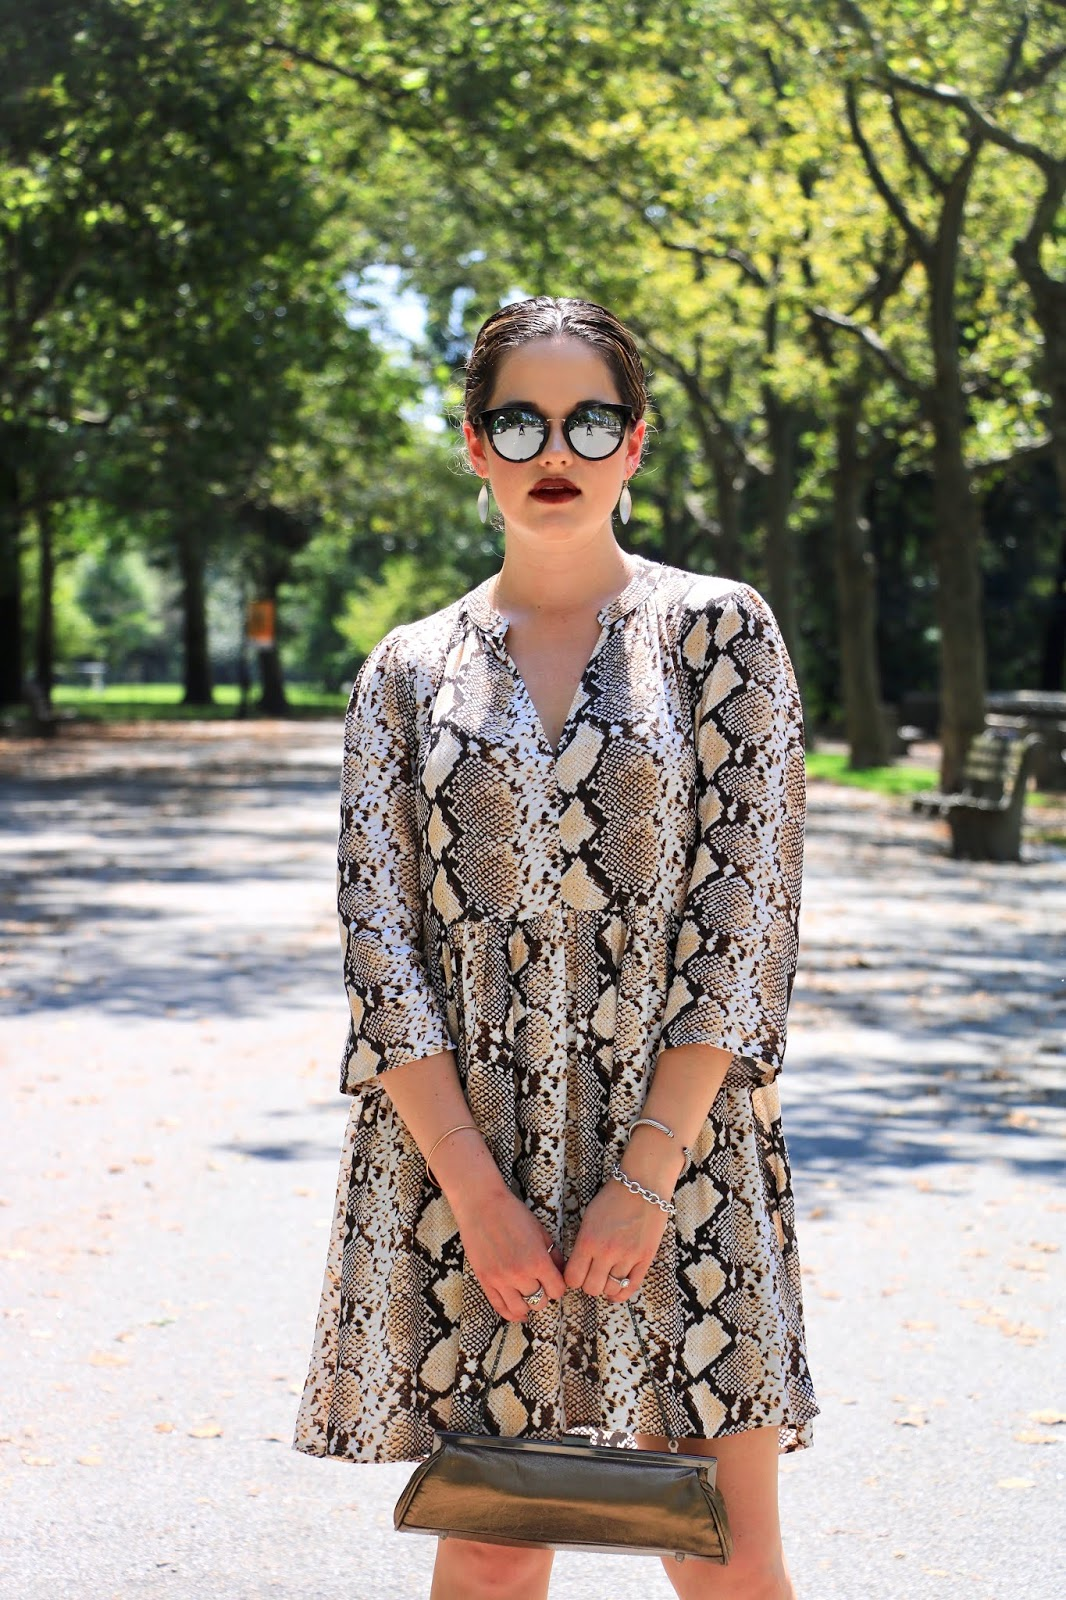 Nyc fashion blogger Kathleen Harper showing 2019 fall style trends.